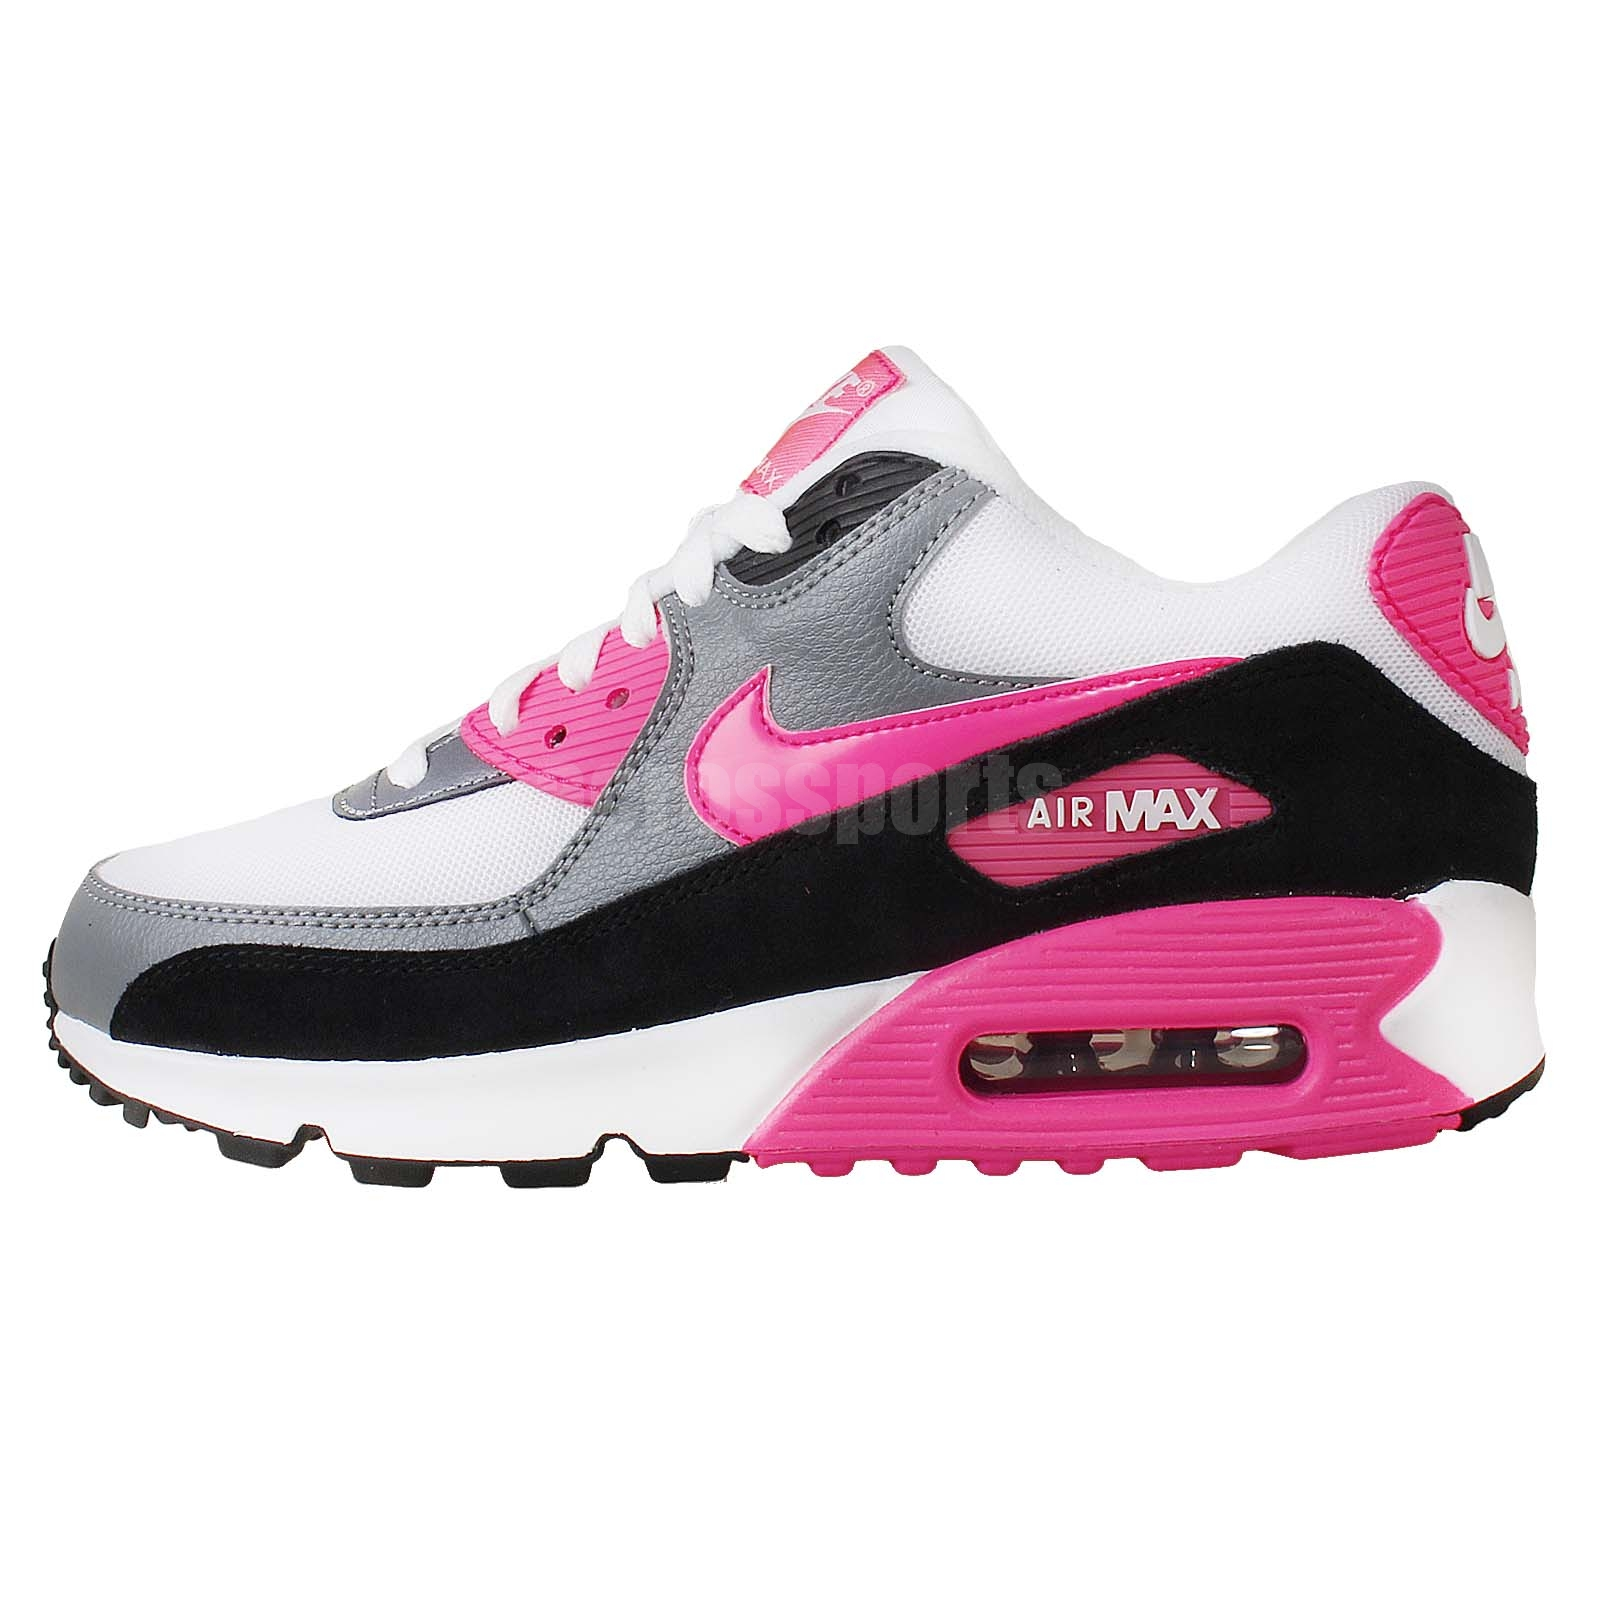 air max 2015 womens price philippines